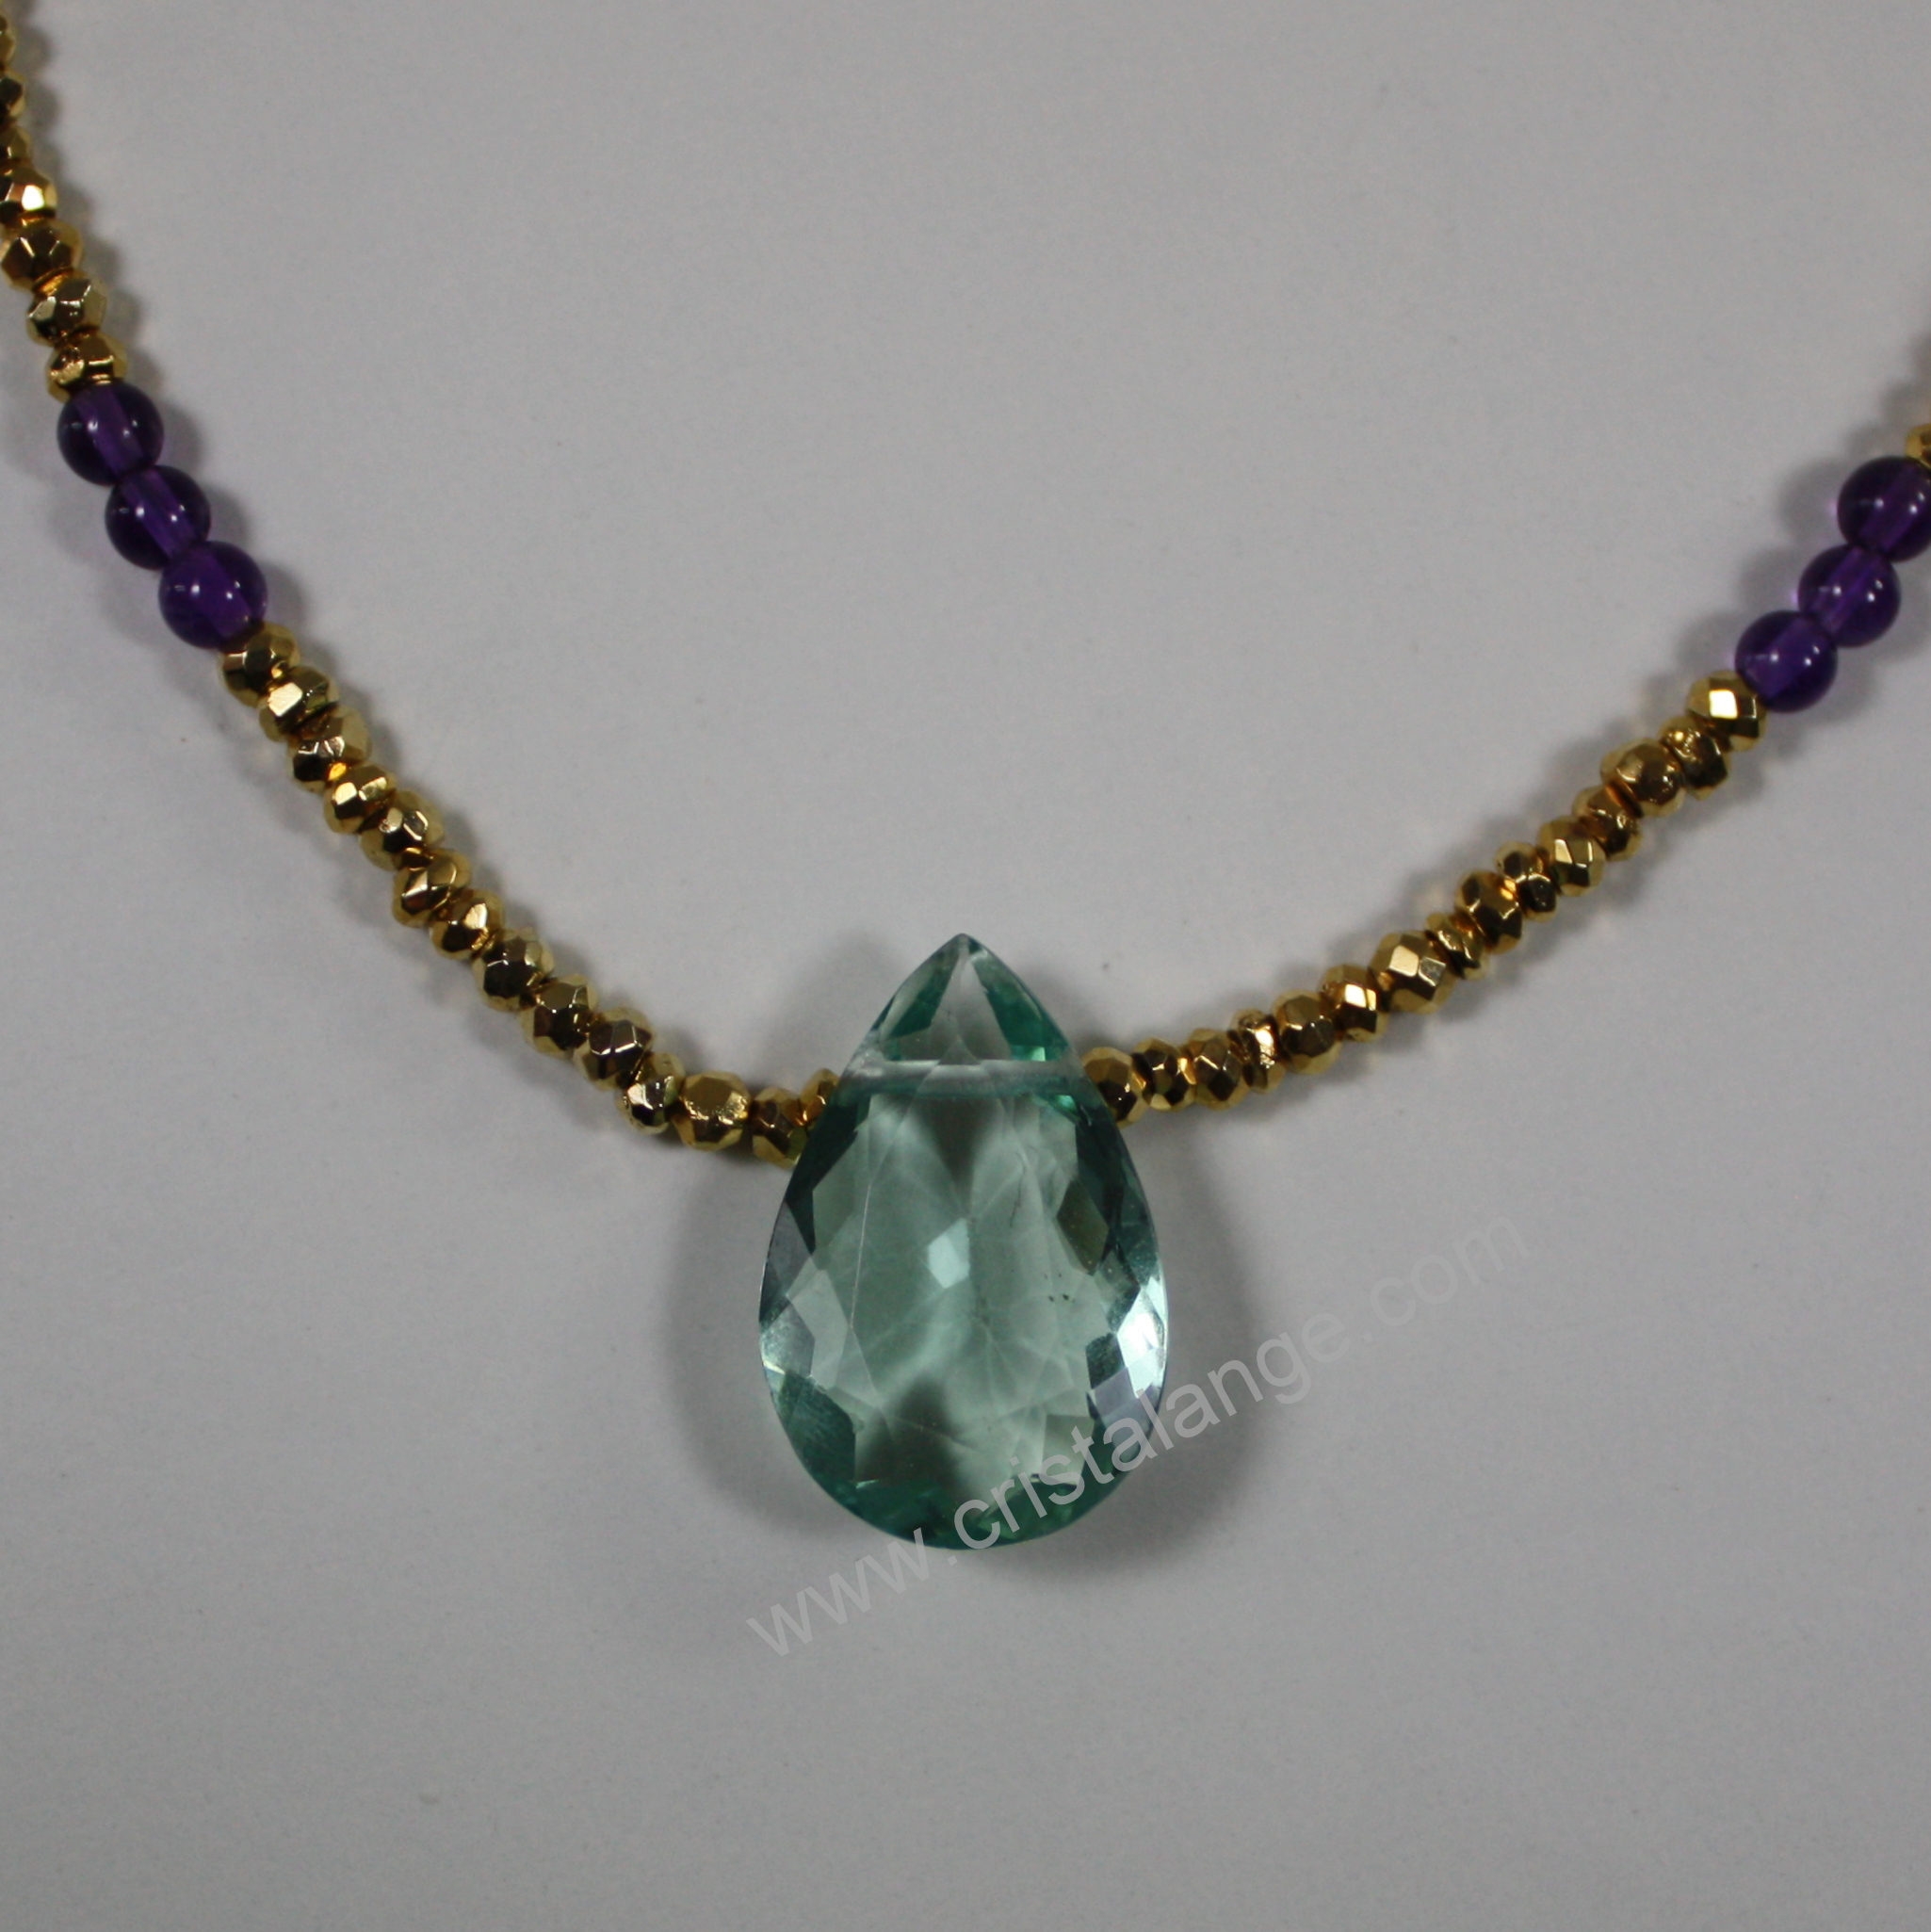 gemstone necklace pendant crystal necklaces healing raw point il p rainbow fluorite fullxfull